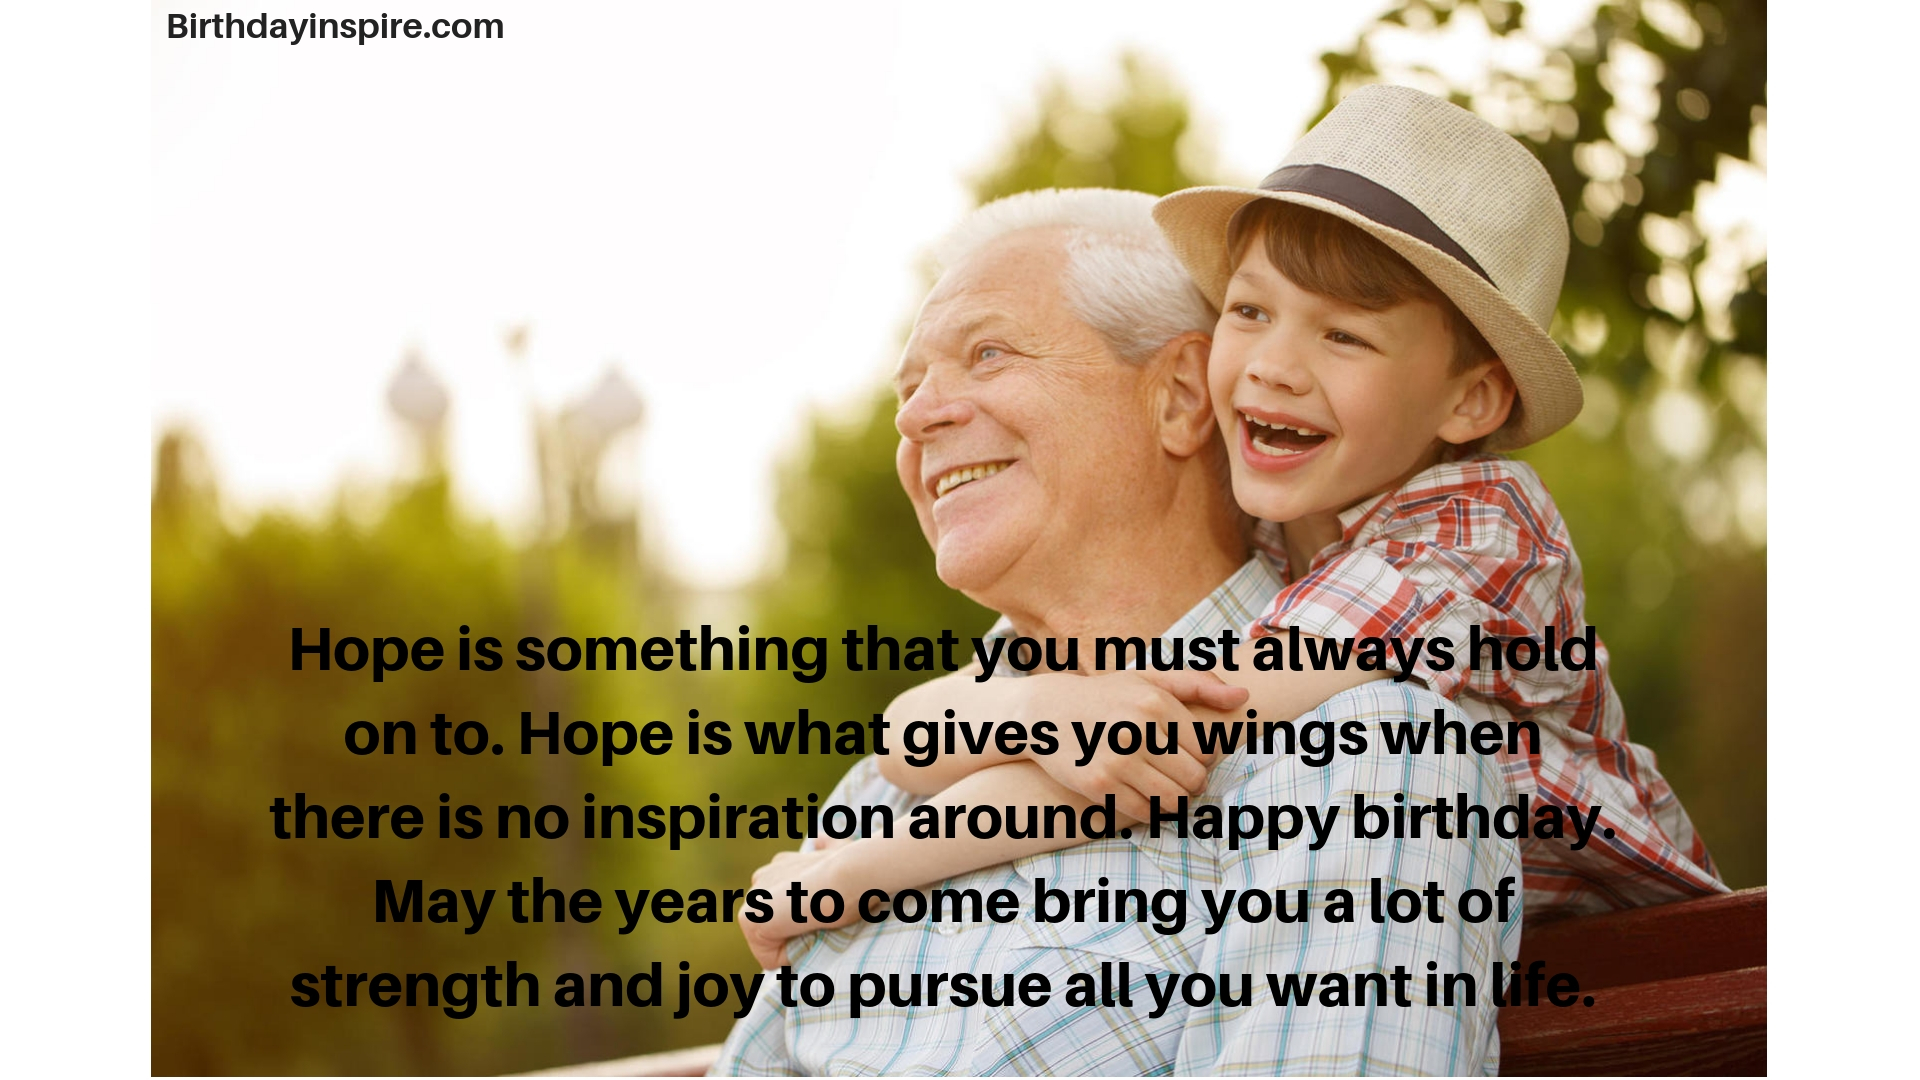 birthday message for grandson